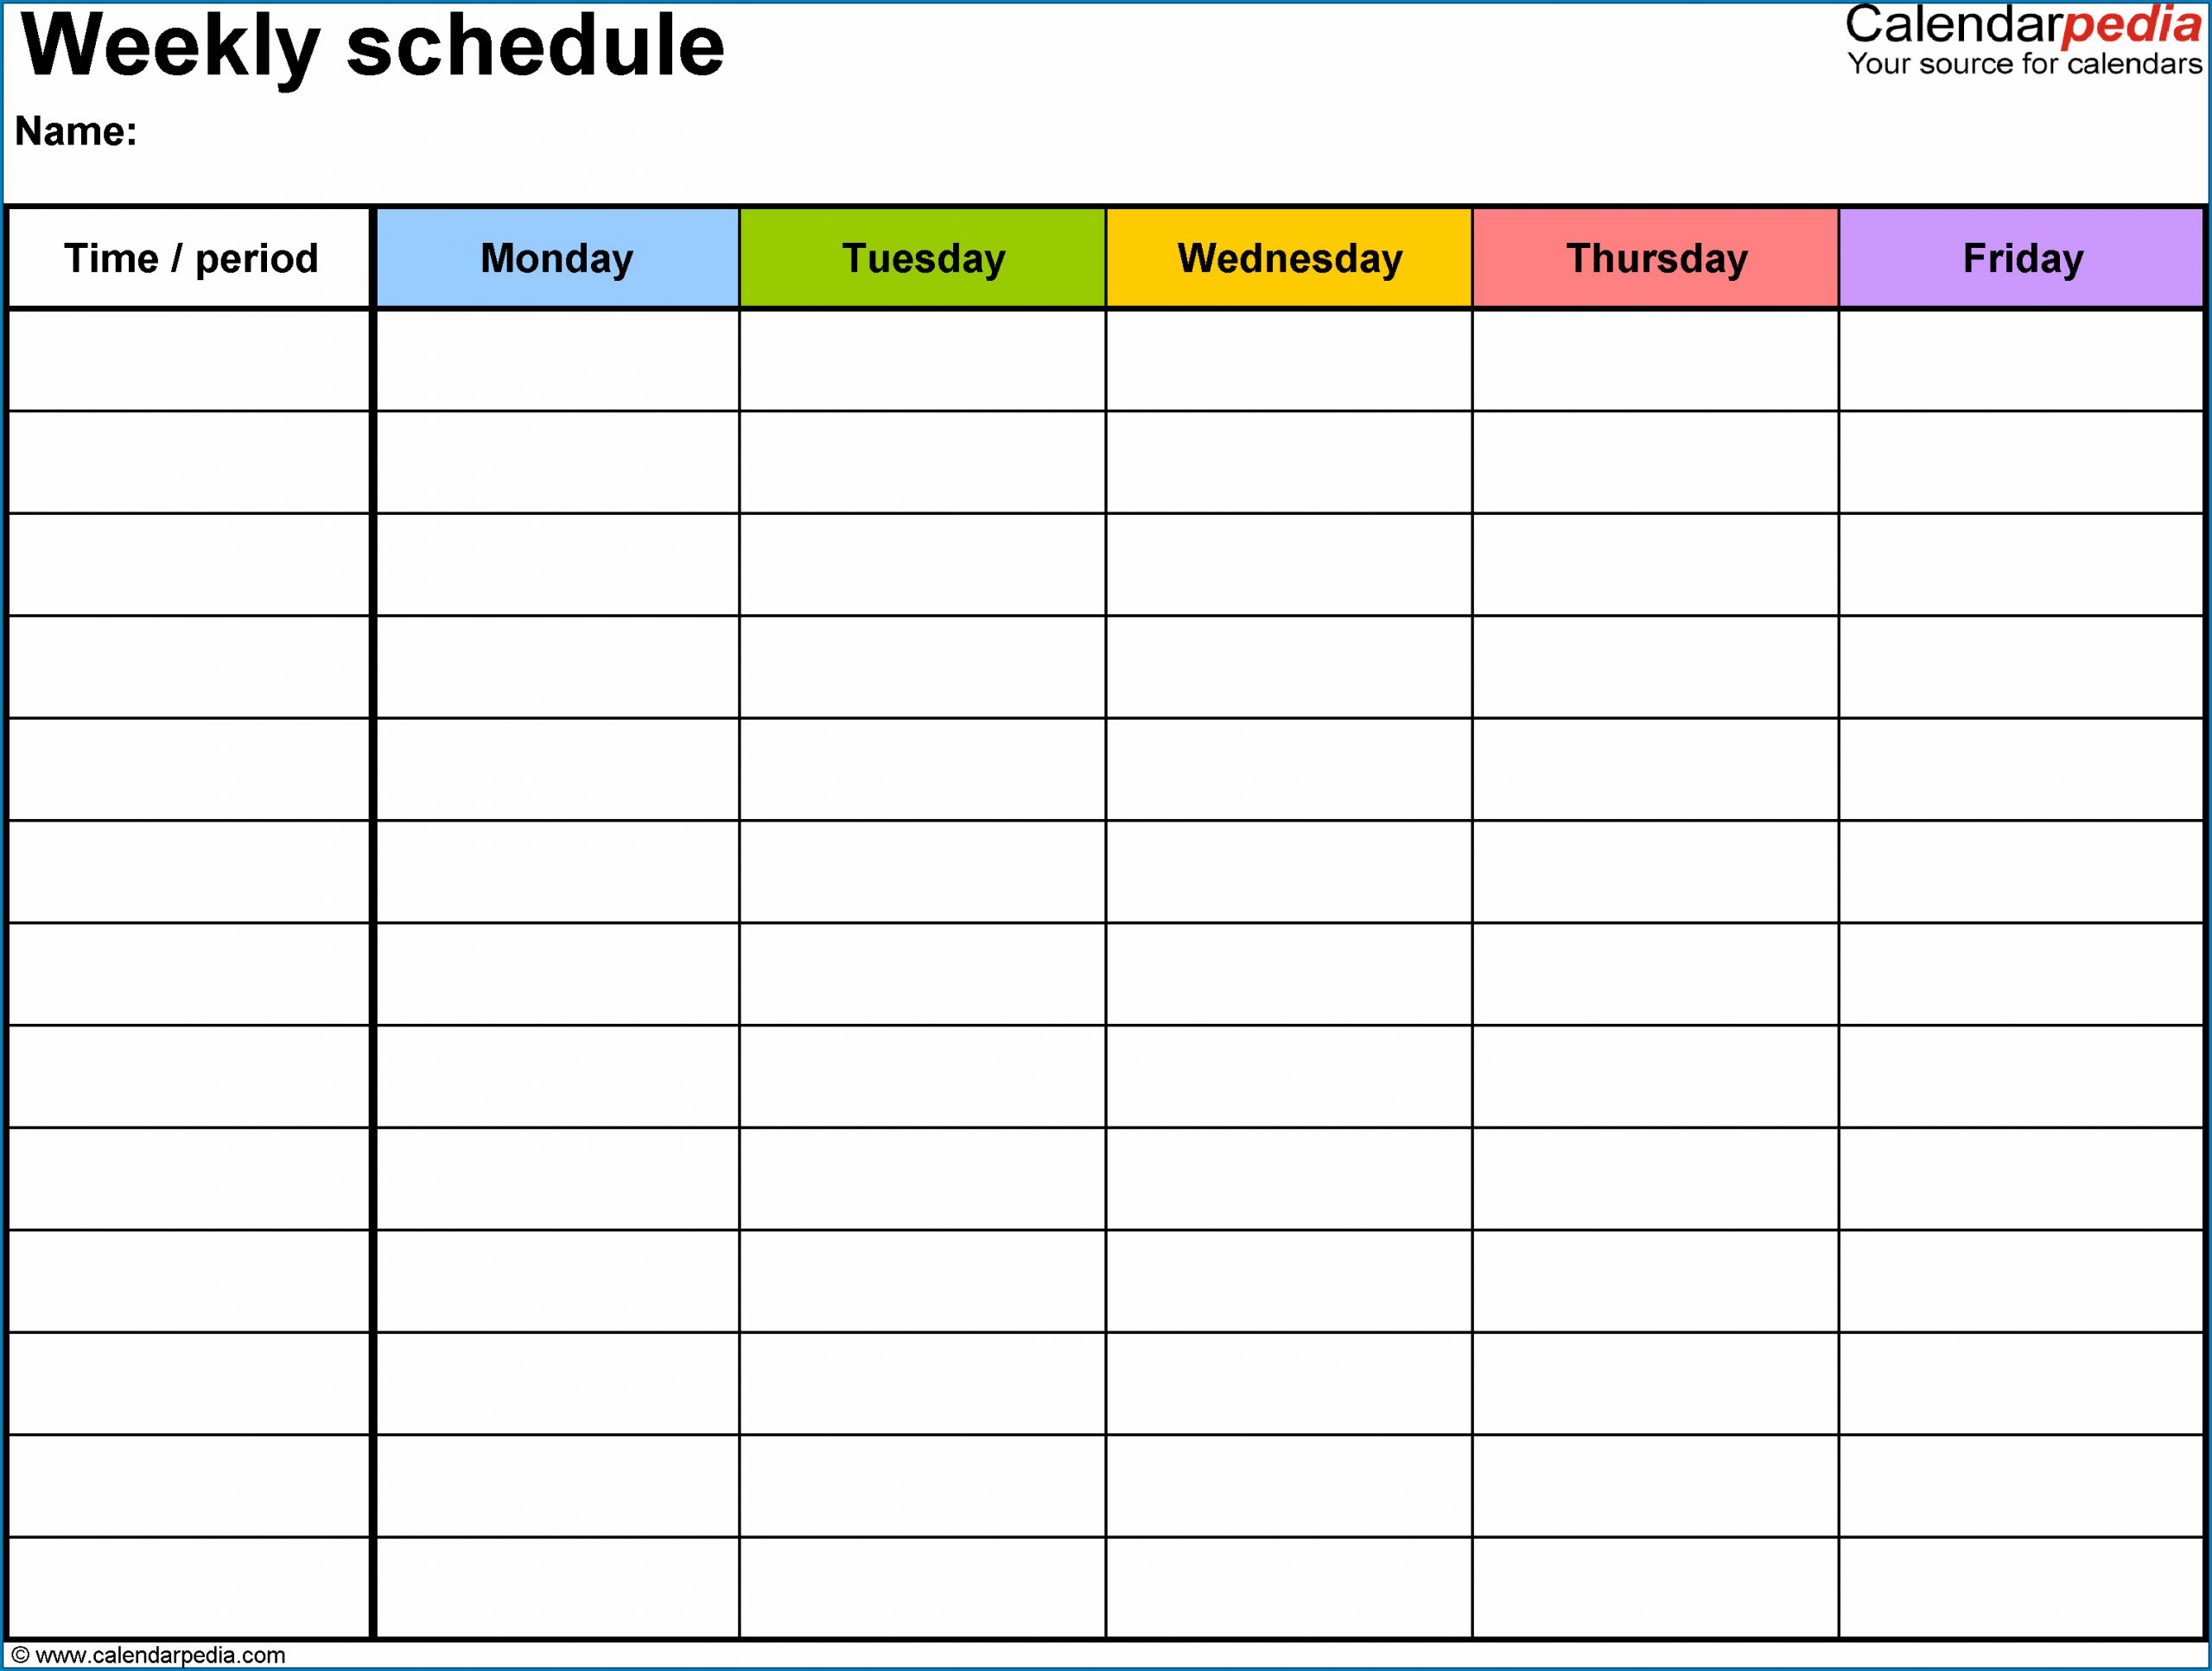 Sample of Weekly Schedule Template Word